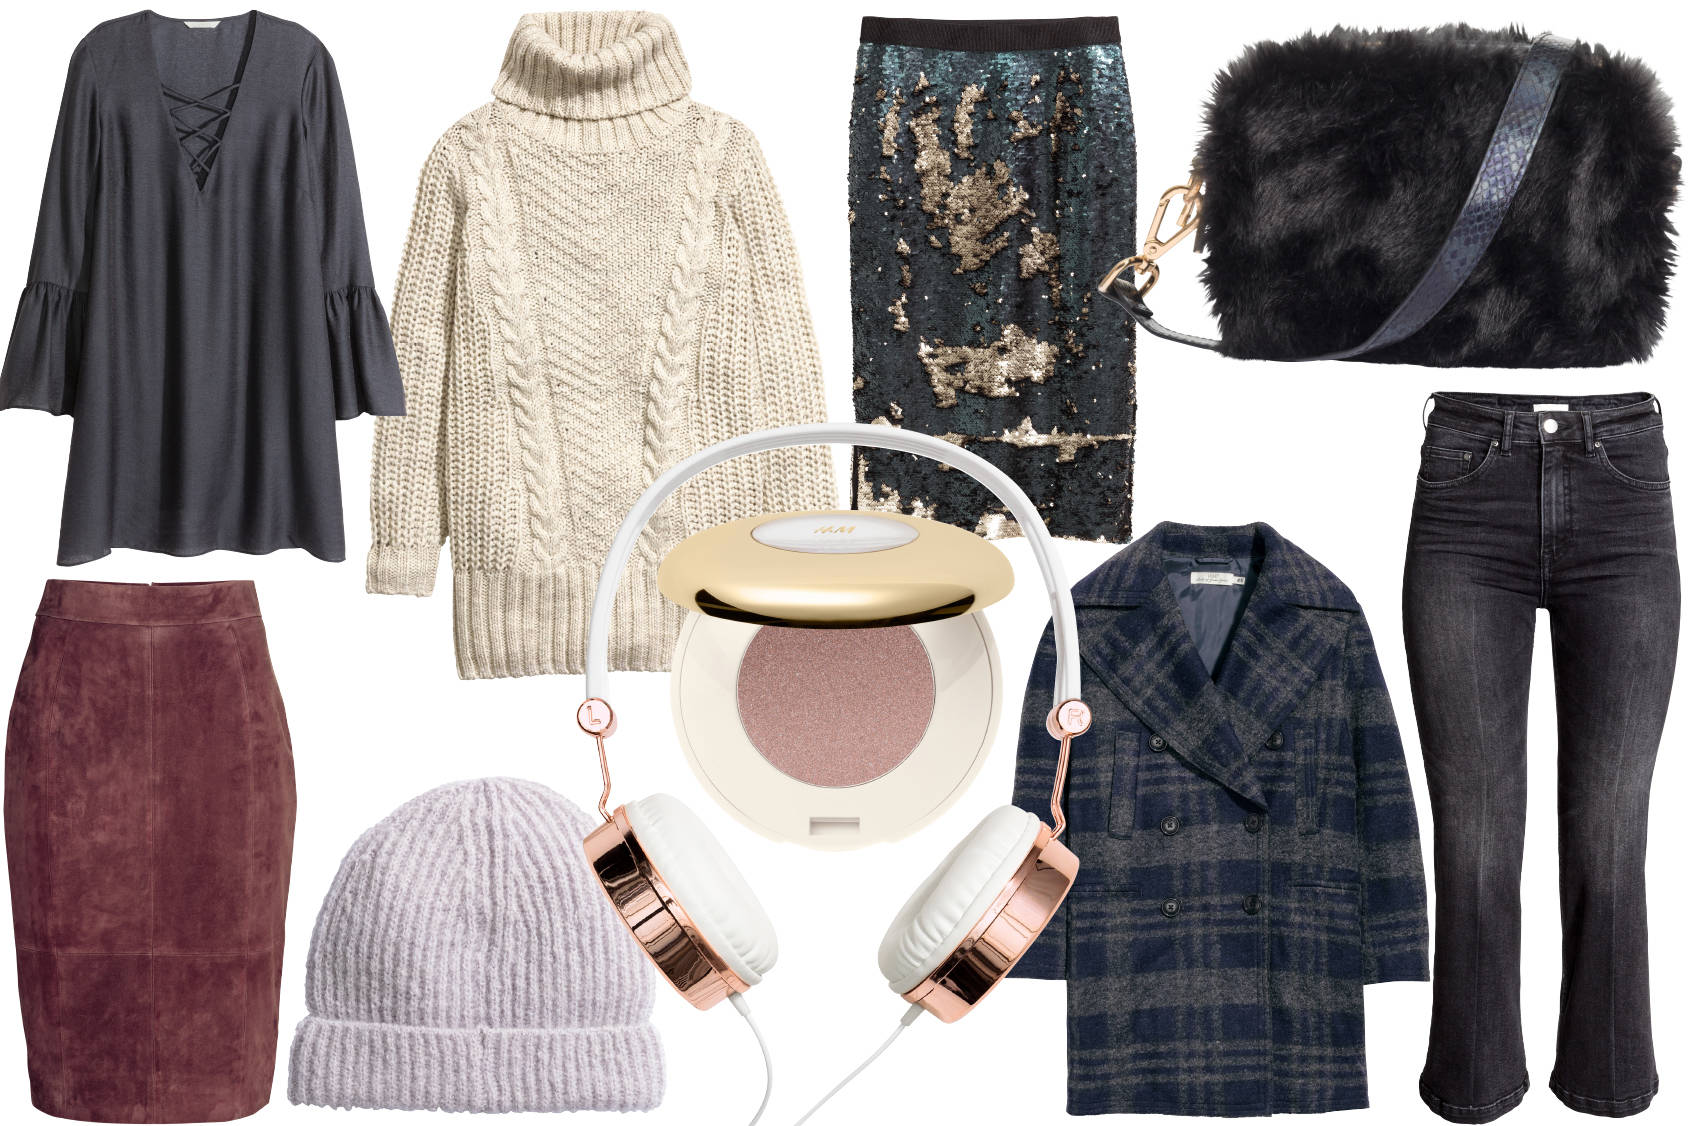 THIS WEEK'S FASHION FINDS, WEEK 50.